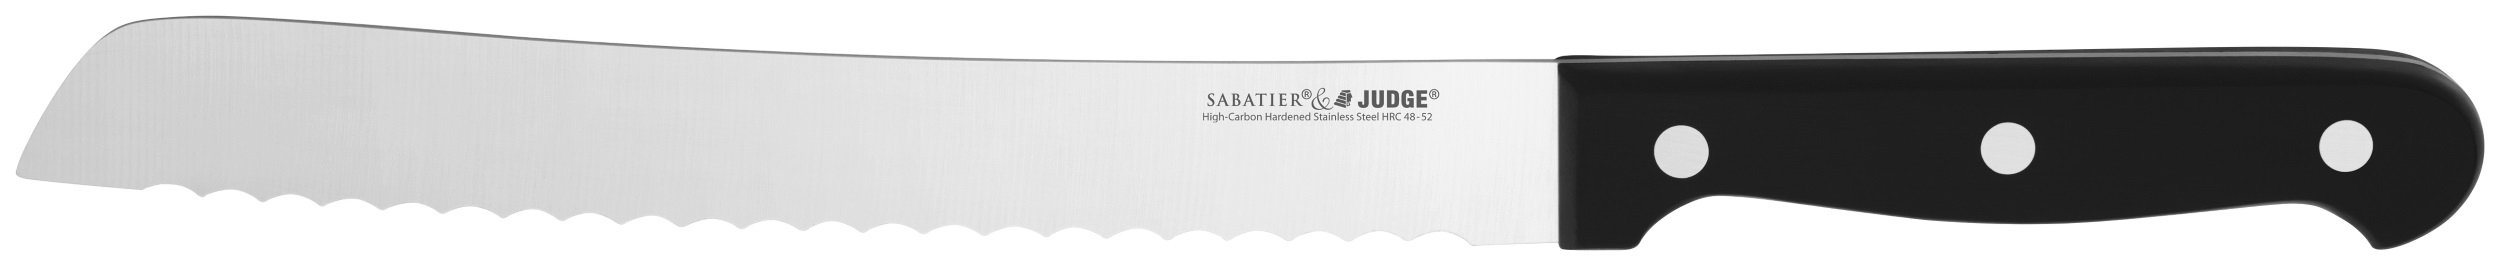 Judge Sabatier Bread Knife 20cm 1 Bread Knife Stainless Steel 20cm